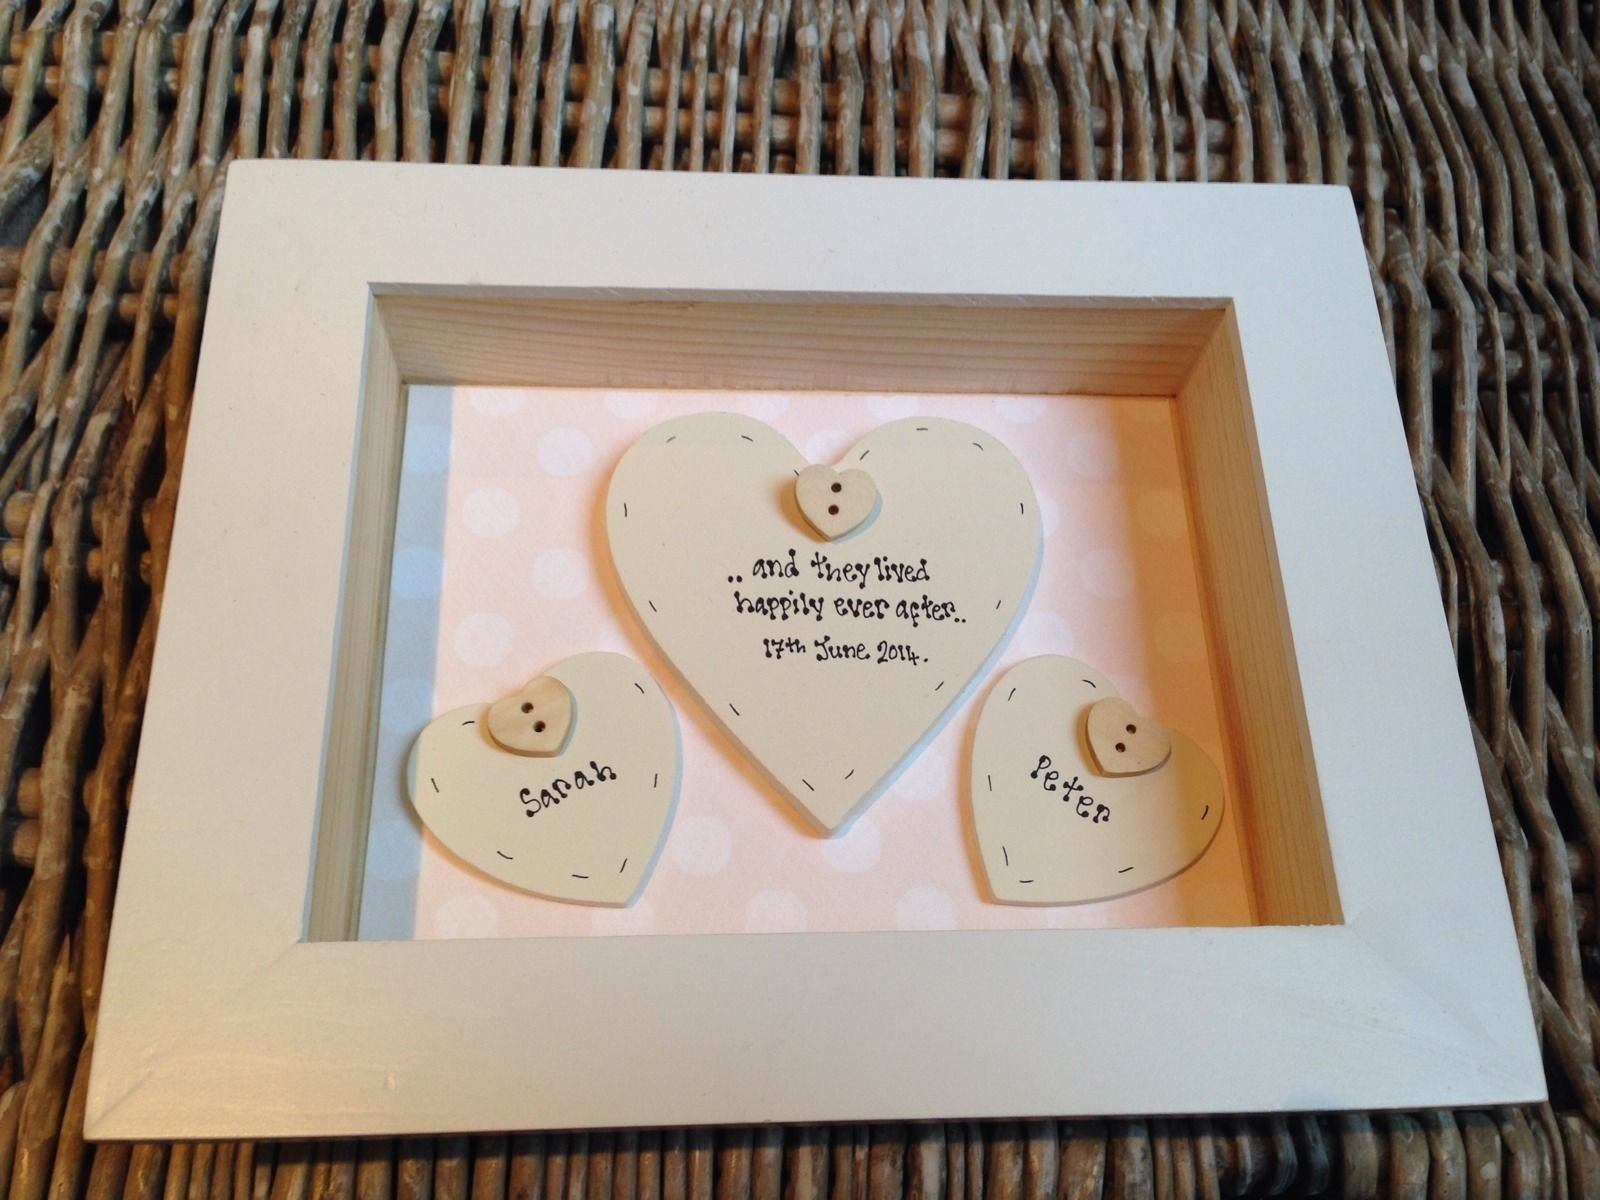 10 Lovable Grooms Gift From Bride Ideas personalised chic box frame gift for bride groom on wedding day 1 2021